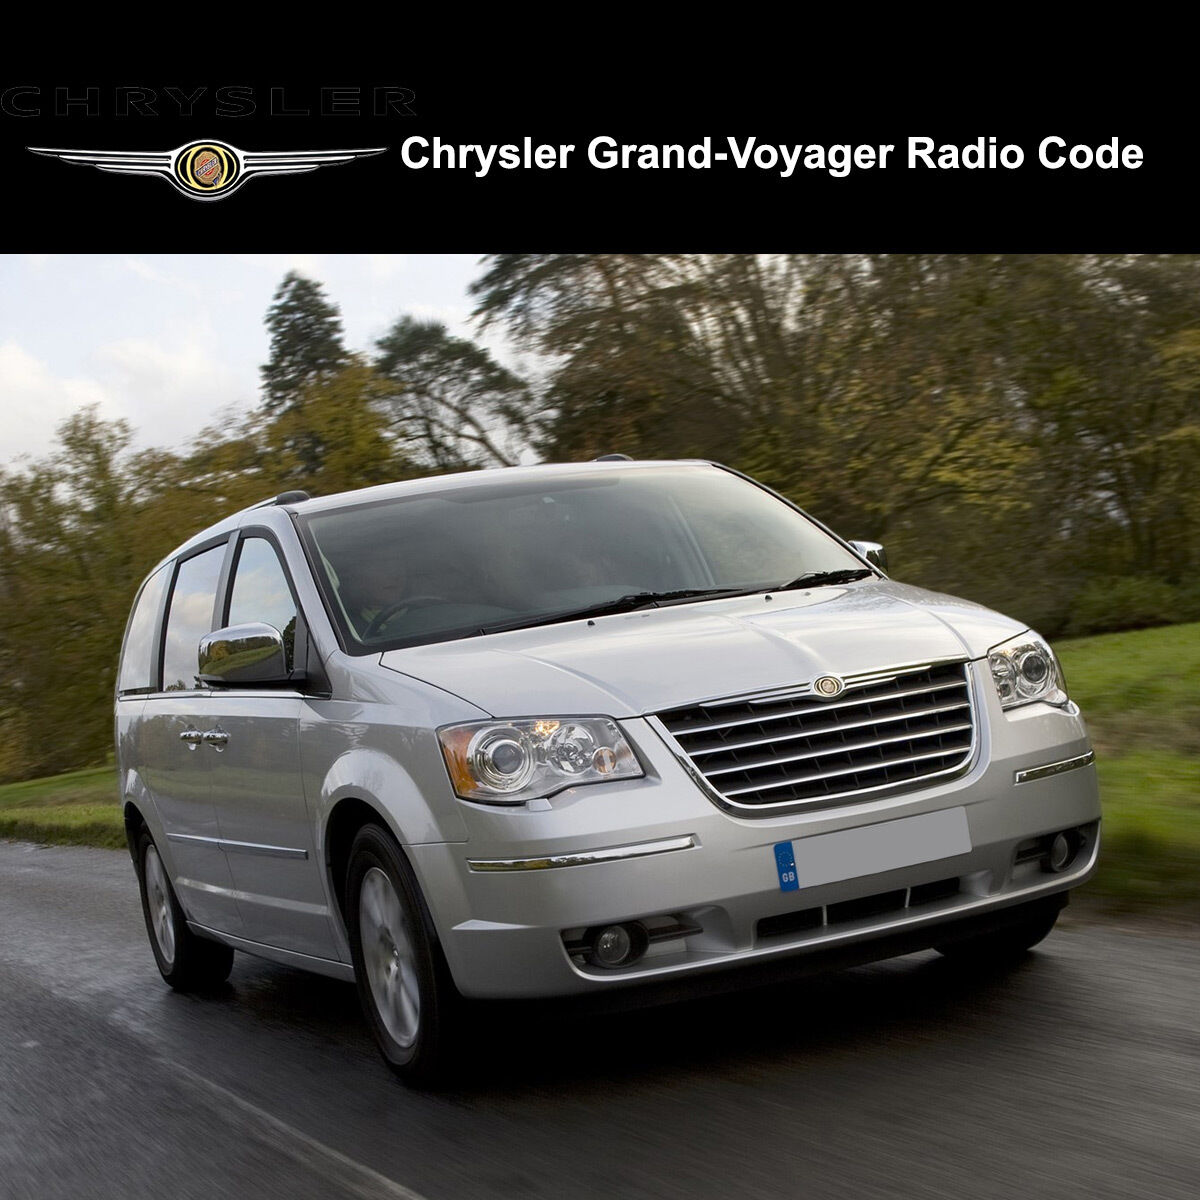 Details about Chrysler Grand-Voyager Radio Codes Stereo Codes Pin Unlock  Code Fast Service